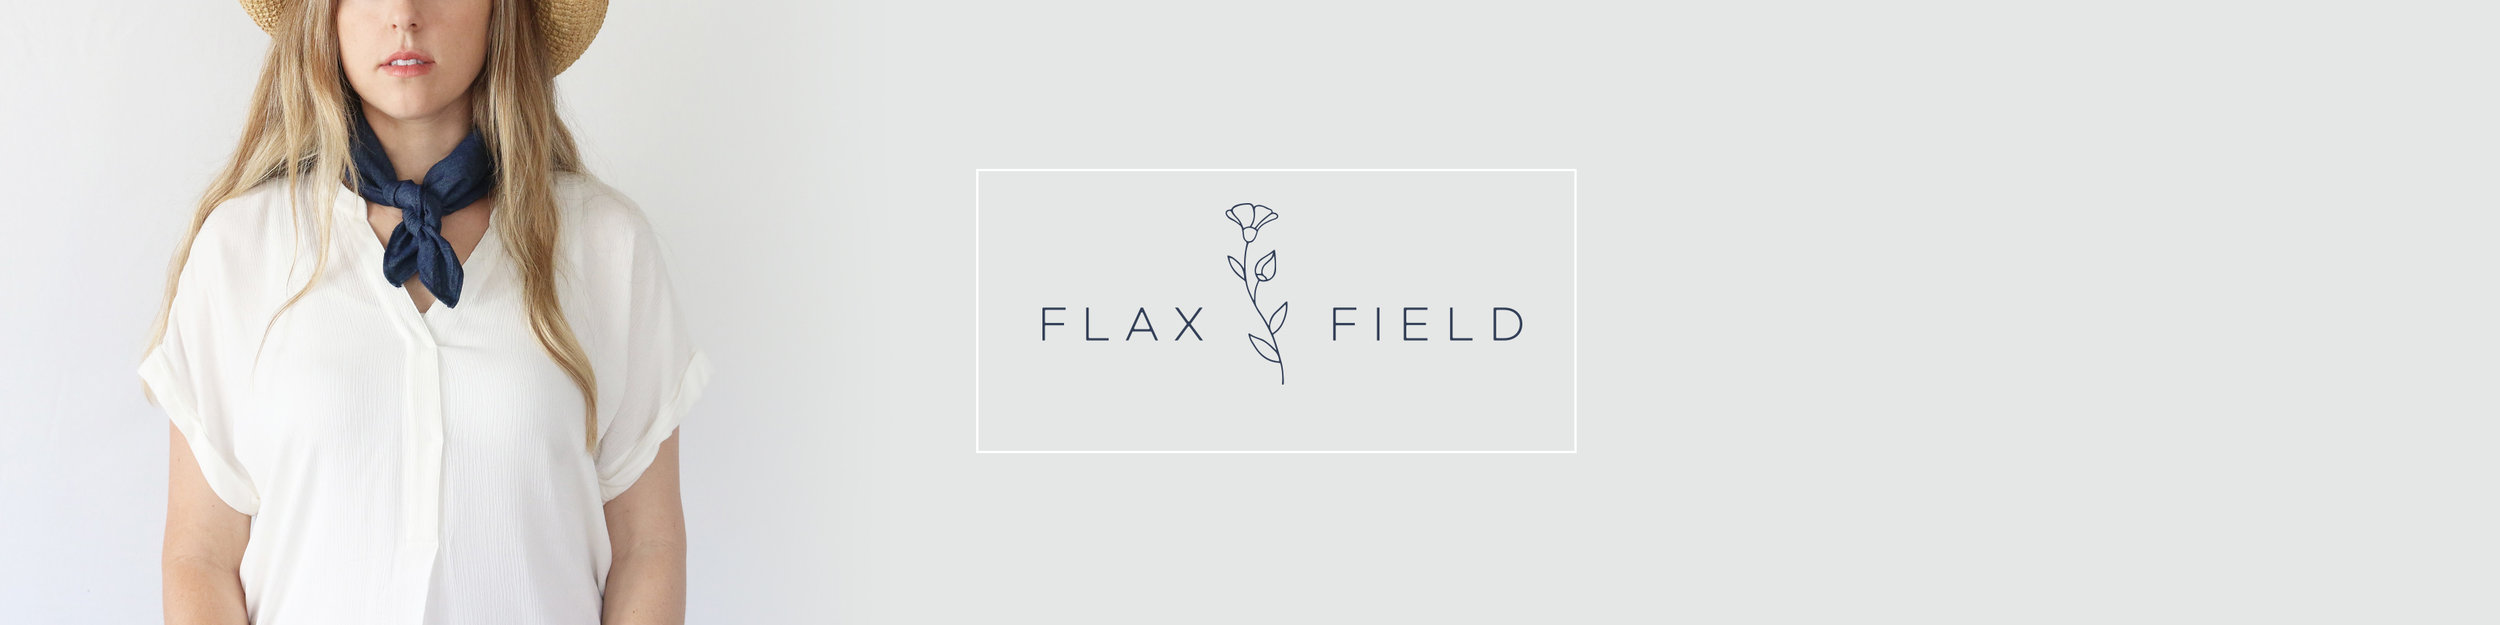 Flax&Field_Banner_Image.jpg